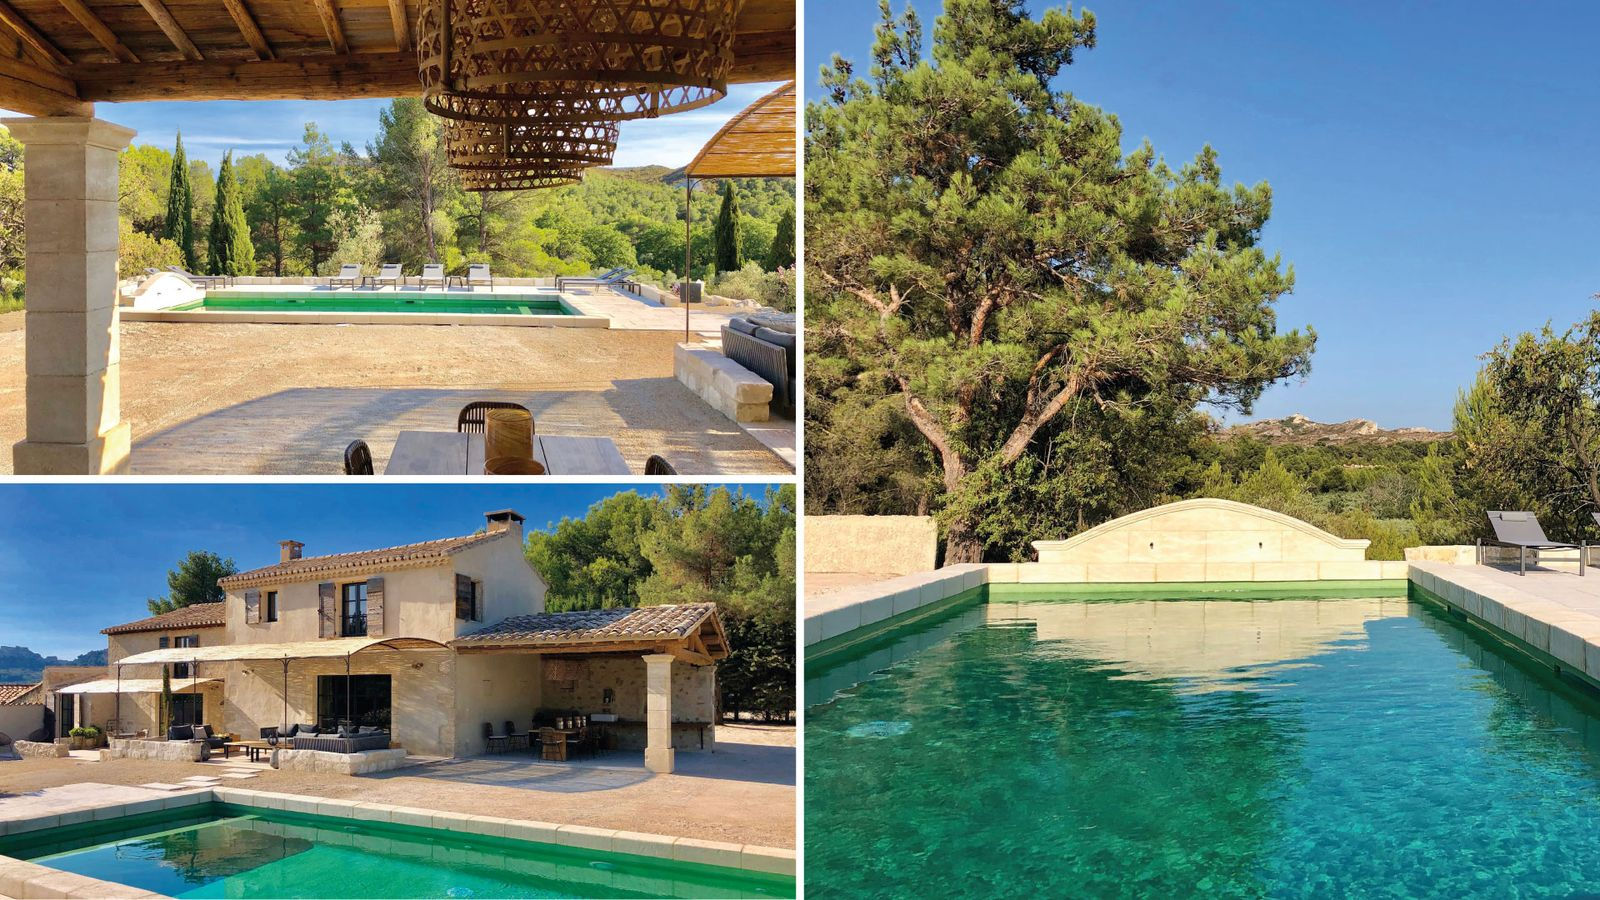 Luxury Villa for rent in France Provence vacations